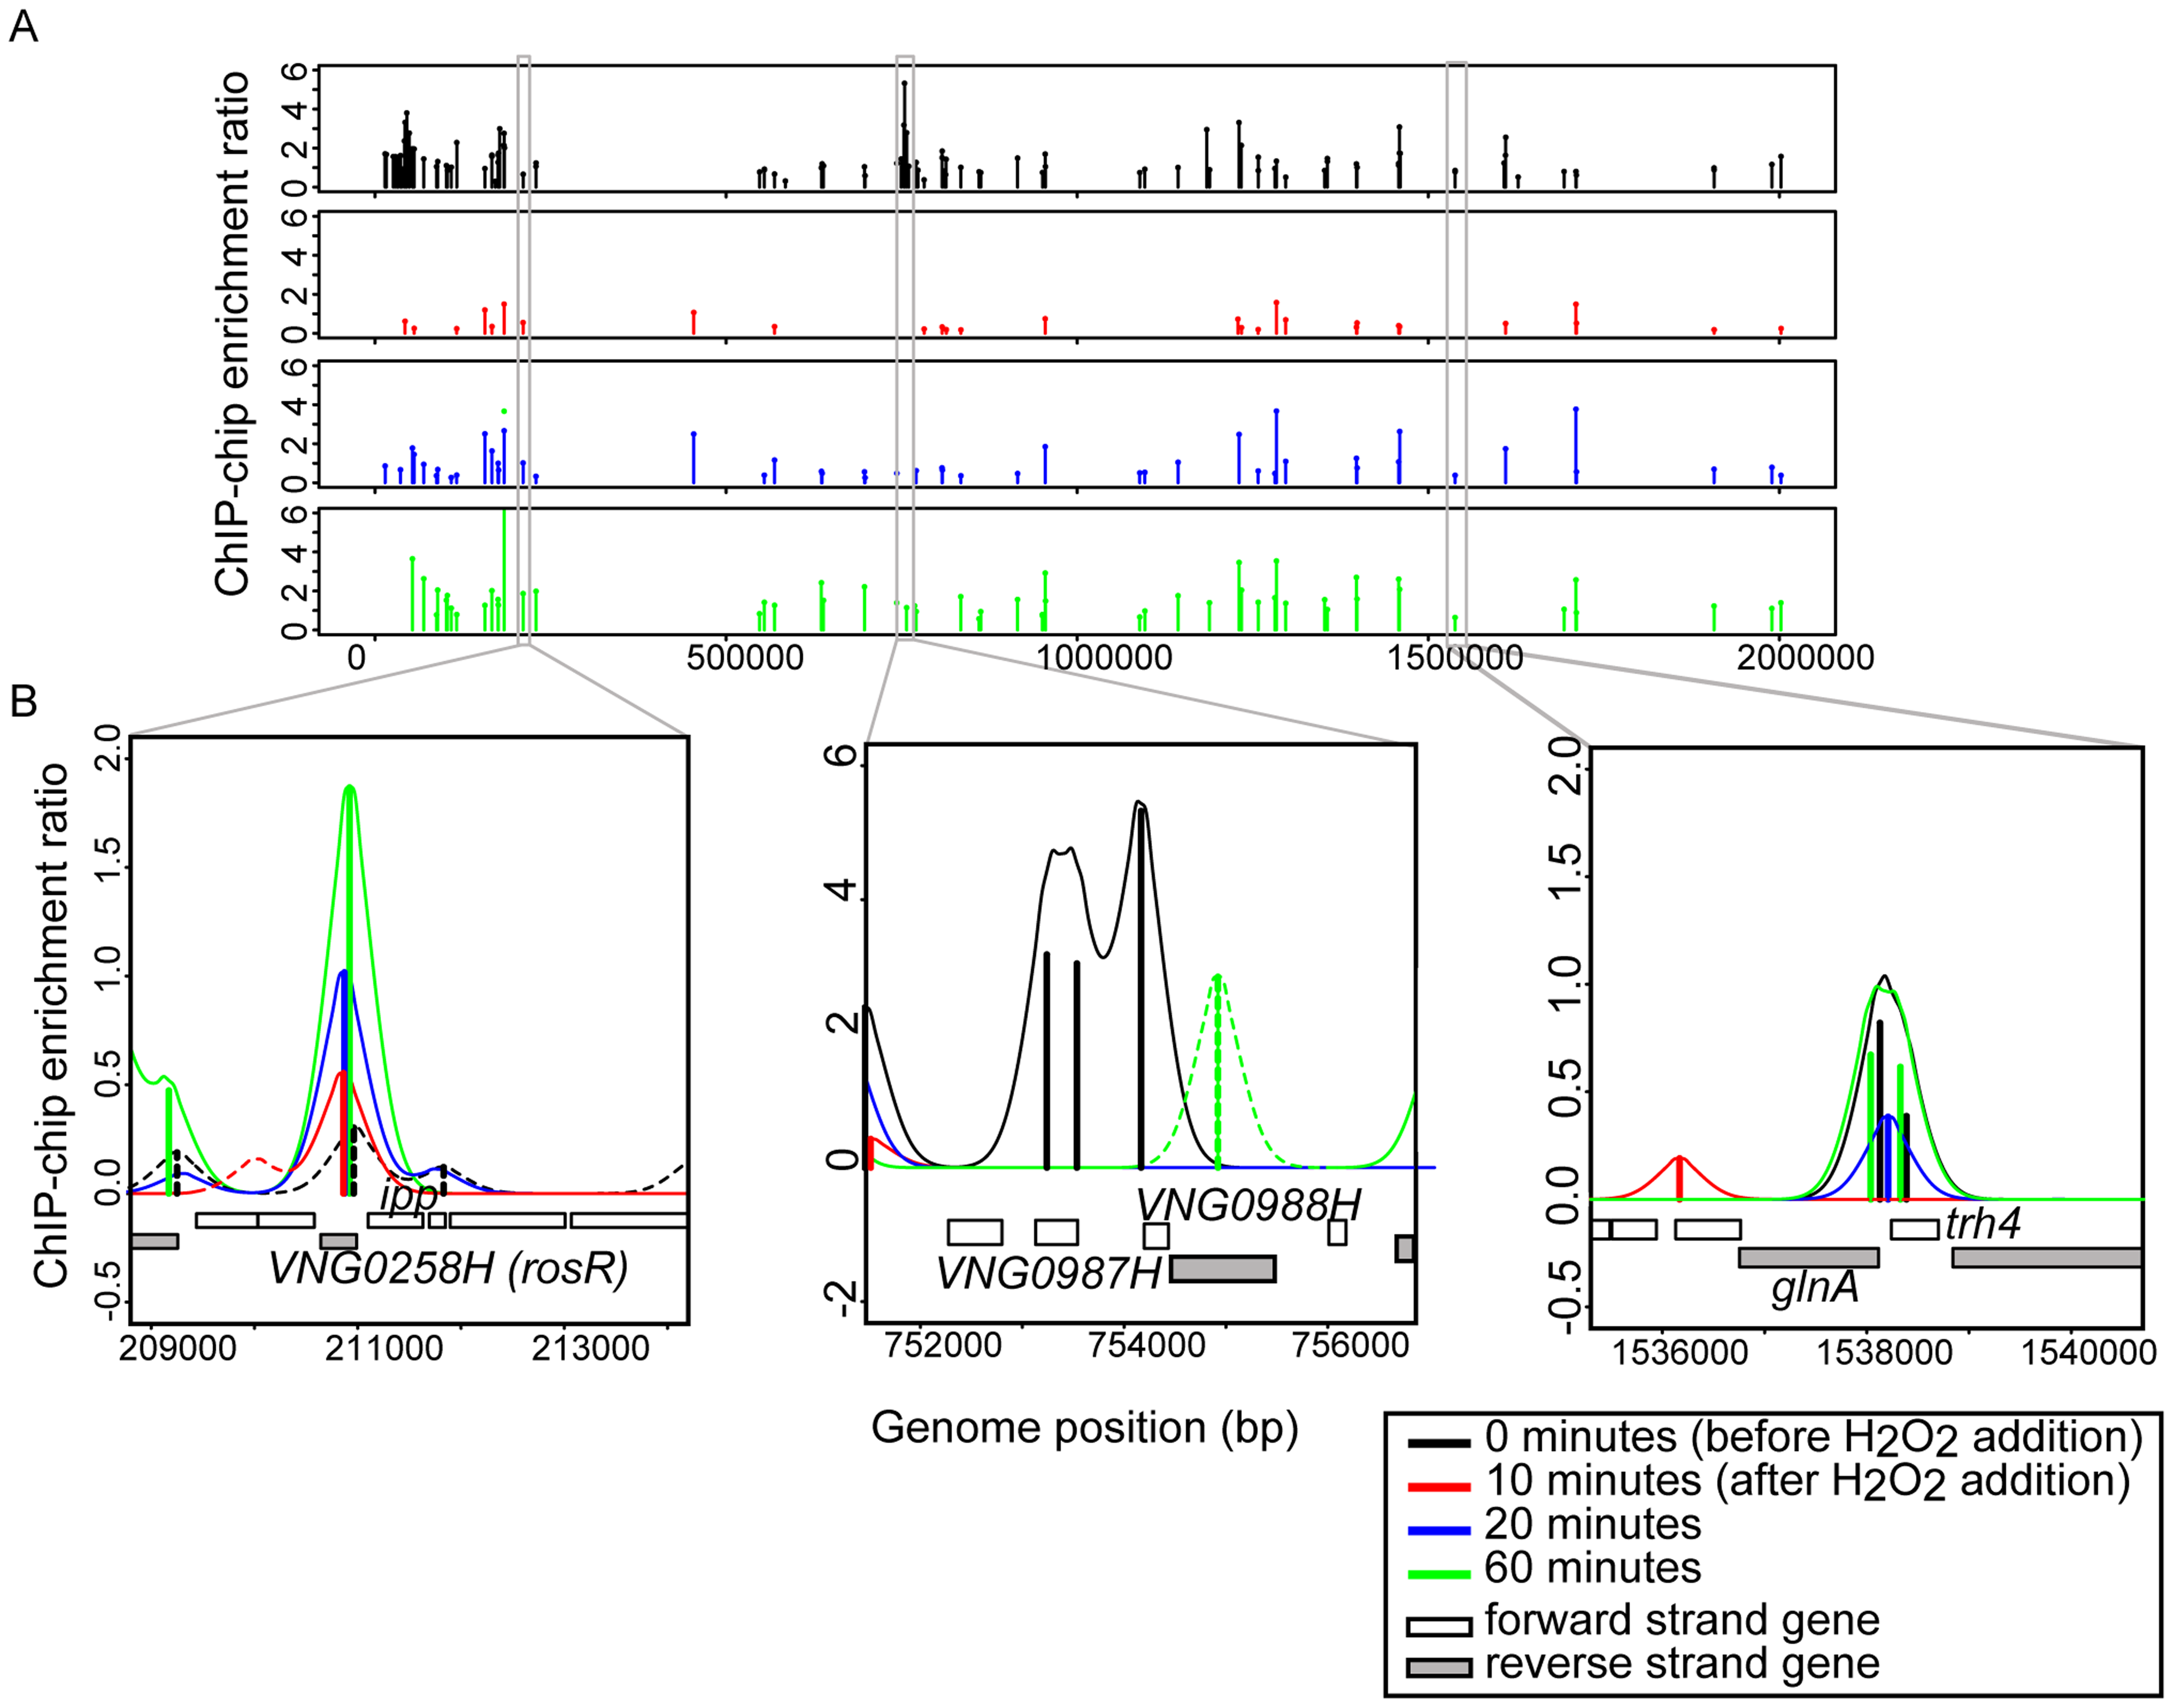 RosR binds to DNA dynamically throughout the genome in response to H<sub>2</sub>O<sub>2</sub>.